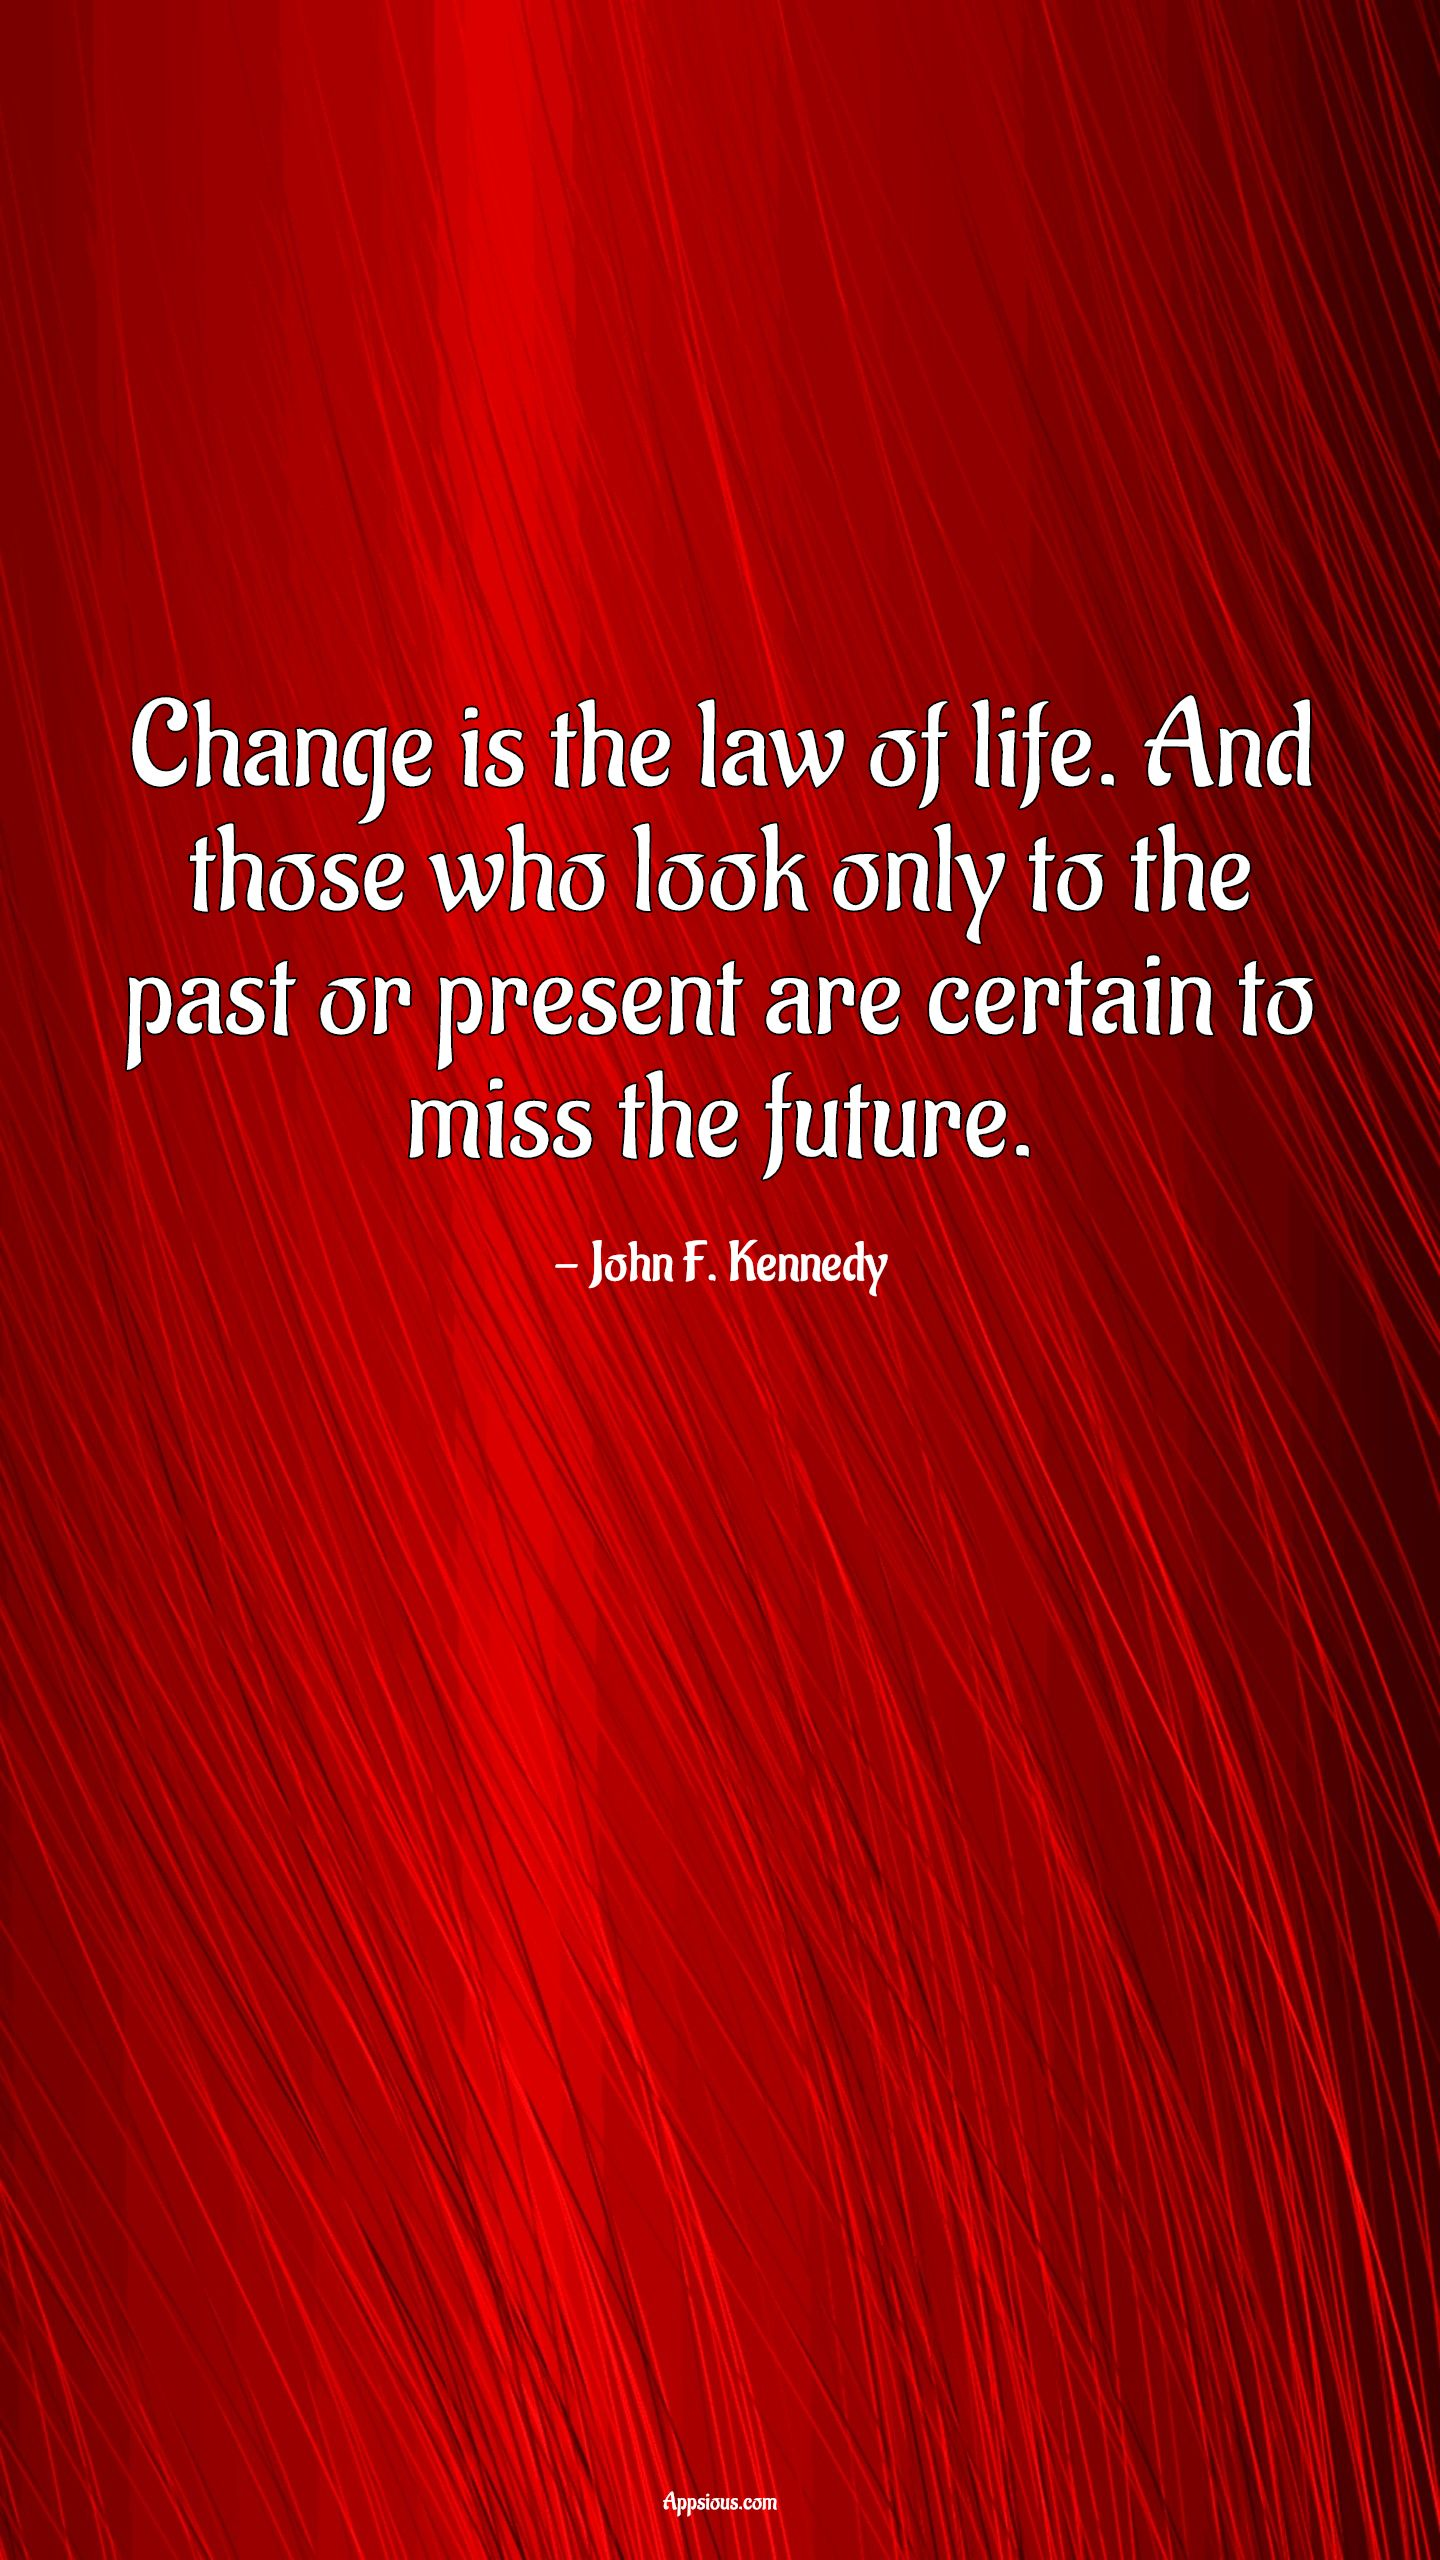 Change is the law of life. And those who look only to the past or present are certain to miss the future.